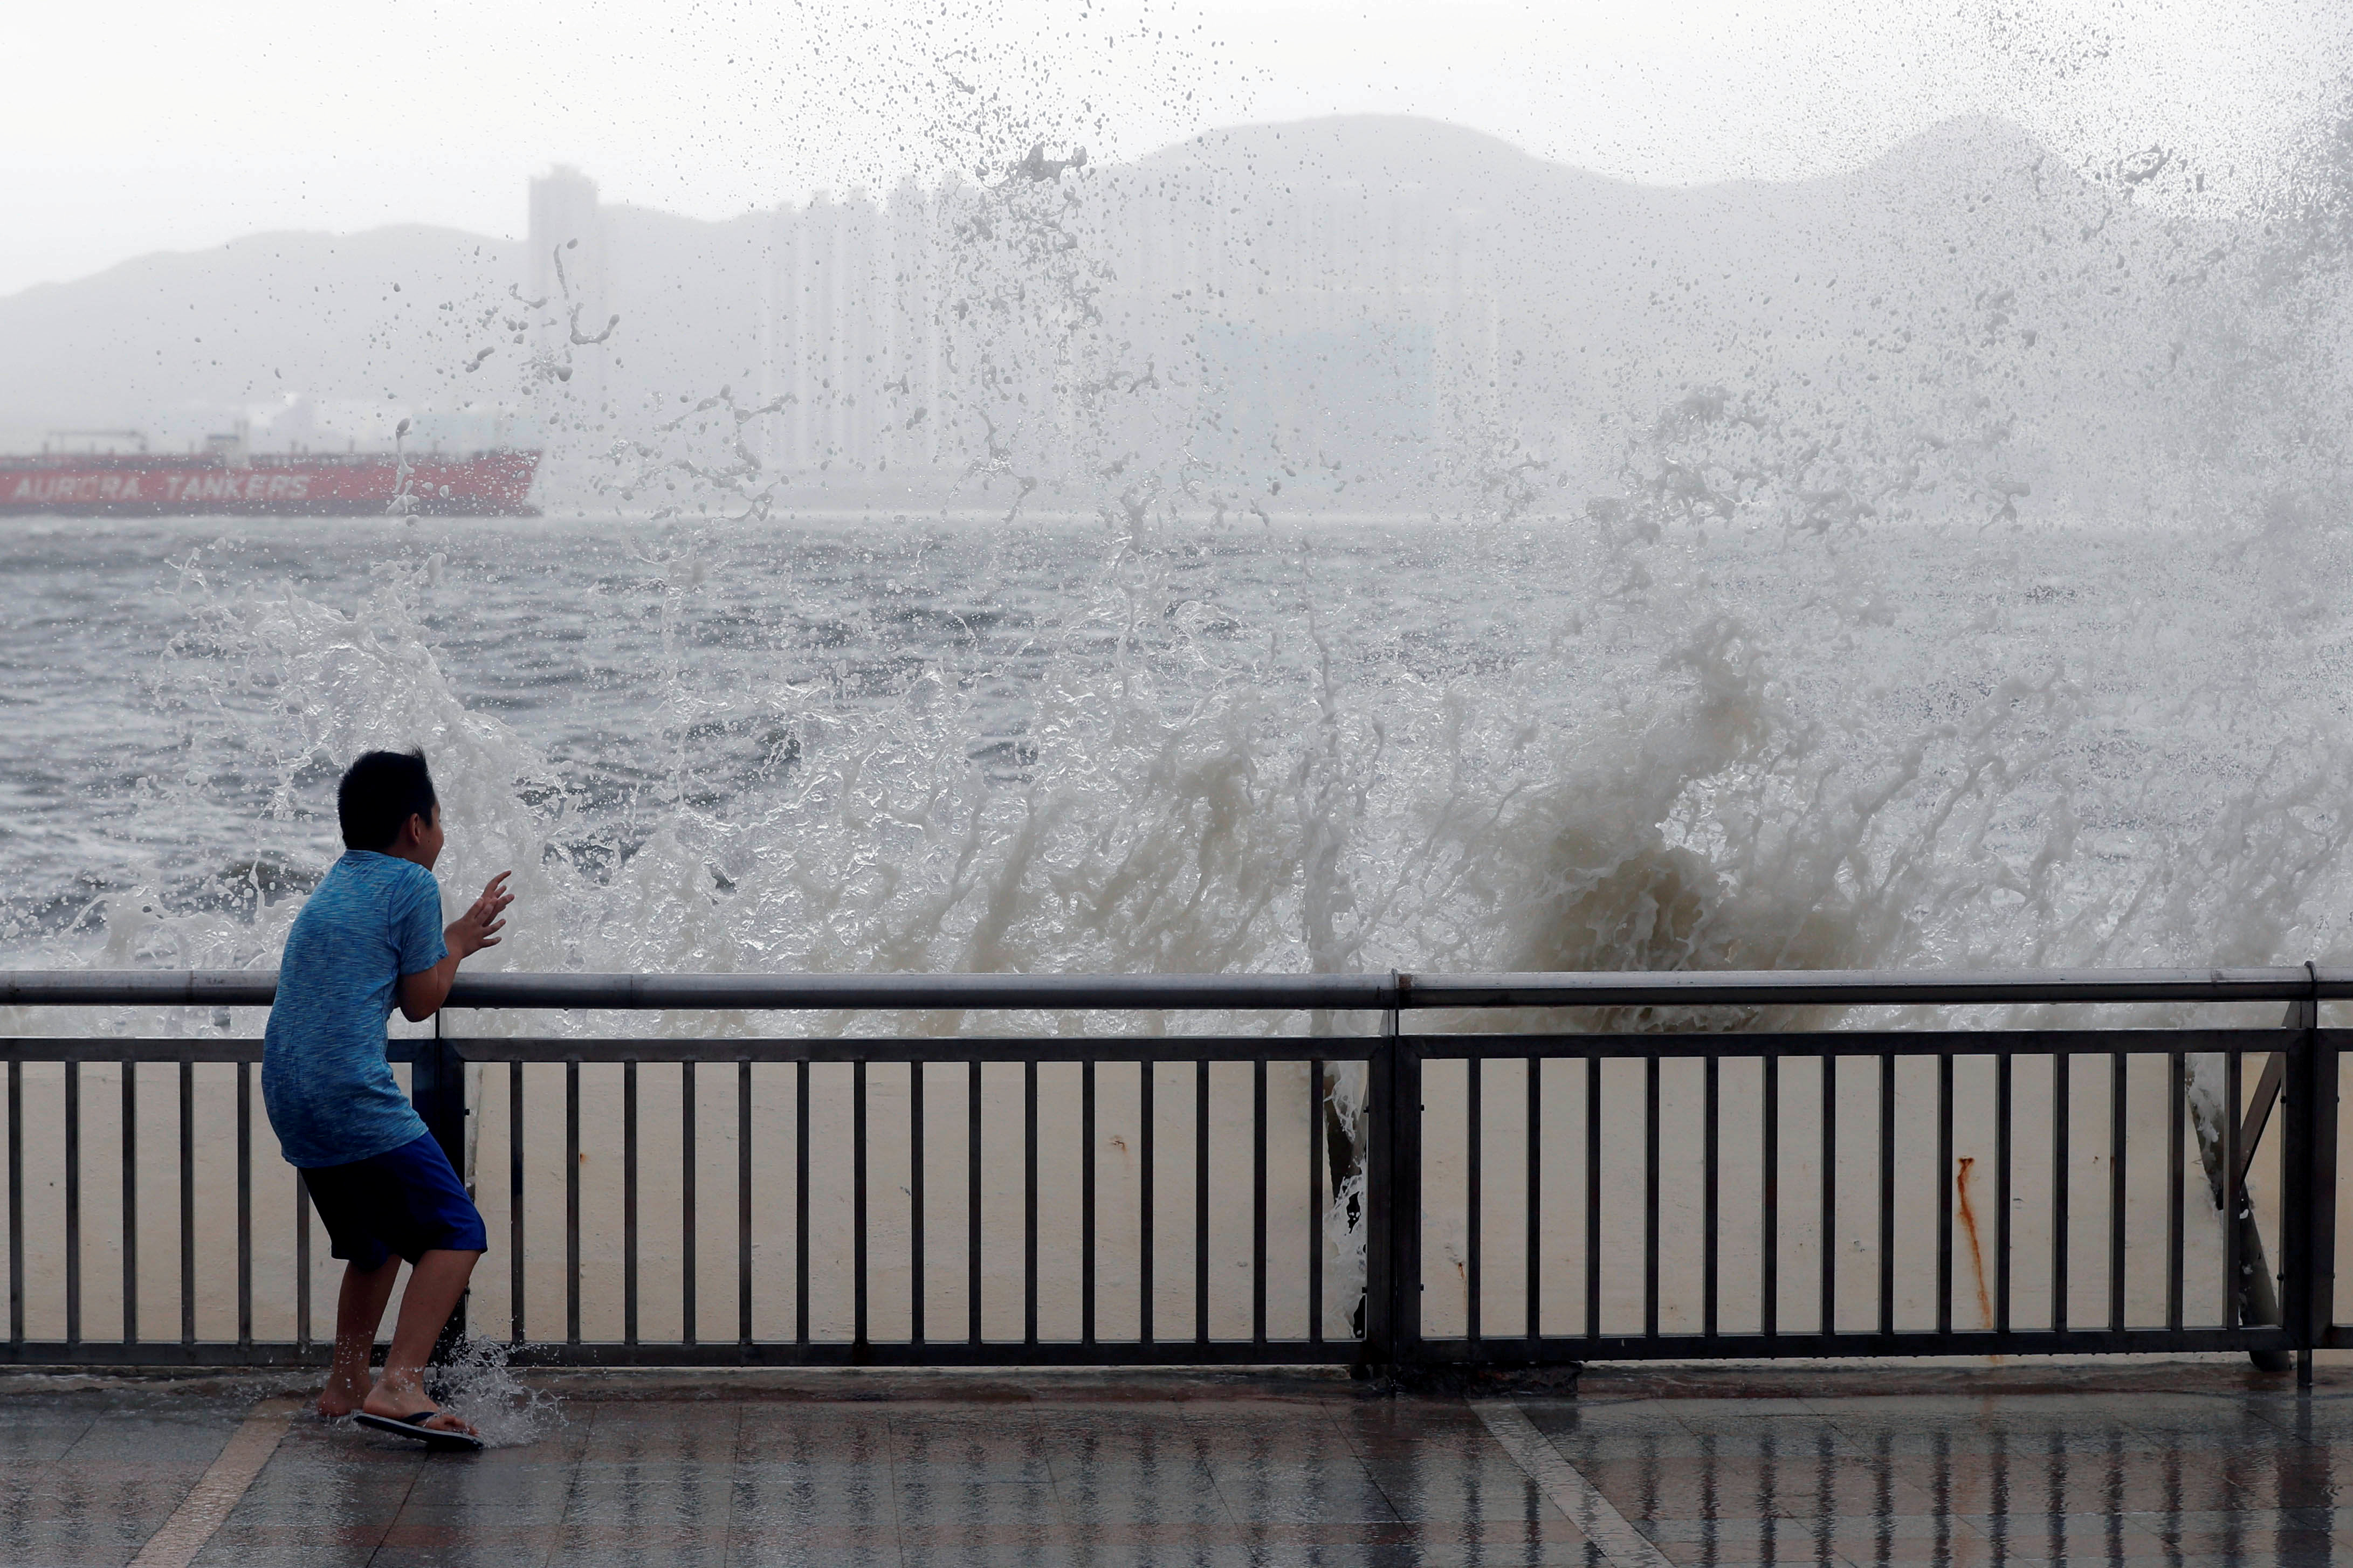 A child reacts after a big wave on a waterfront as Typhoon Hato hits Hong Kong, China August 23, 2017. REUTERS/Tyrone Siu TPX IMAGES OF THE DAY - RTS1CWRT